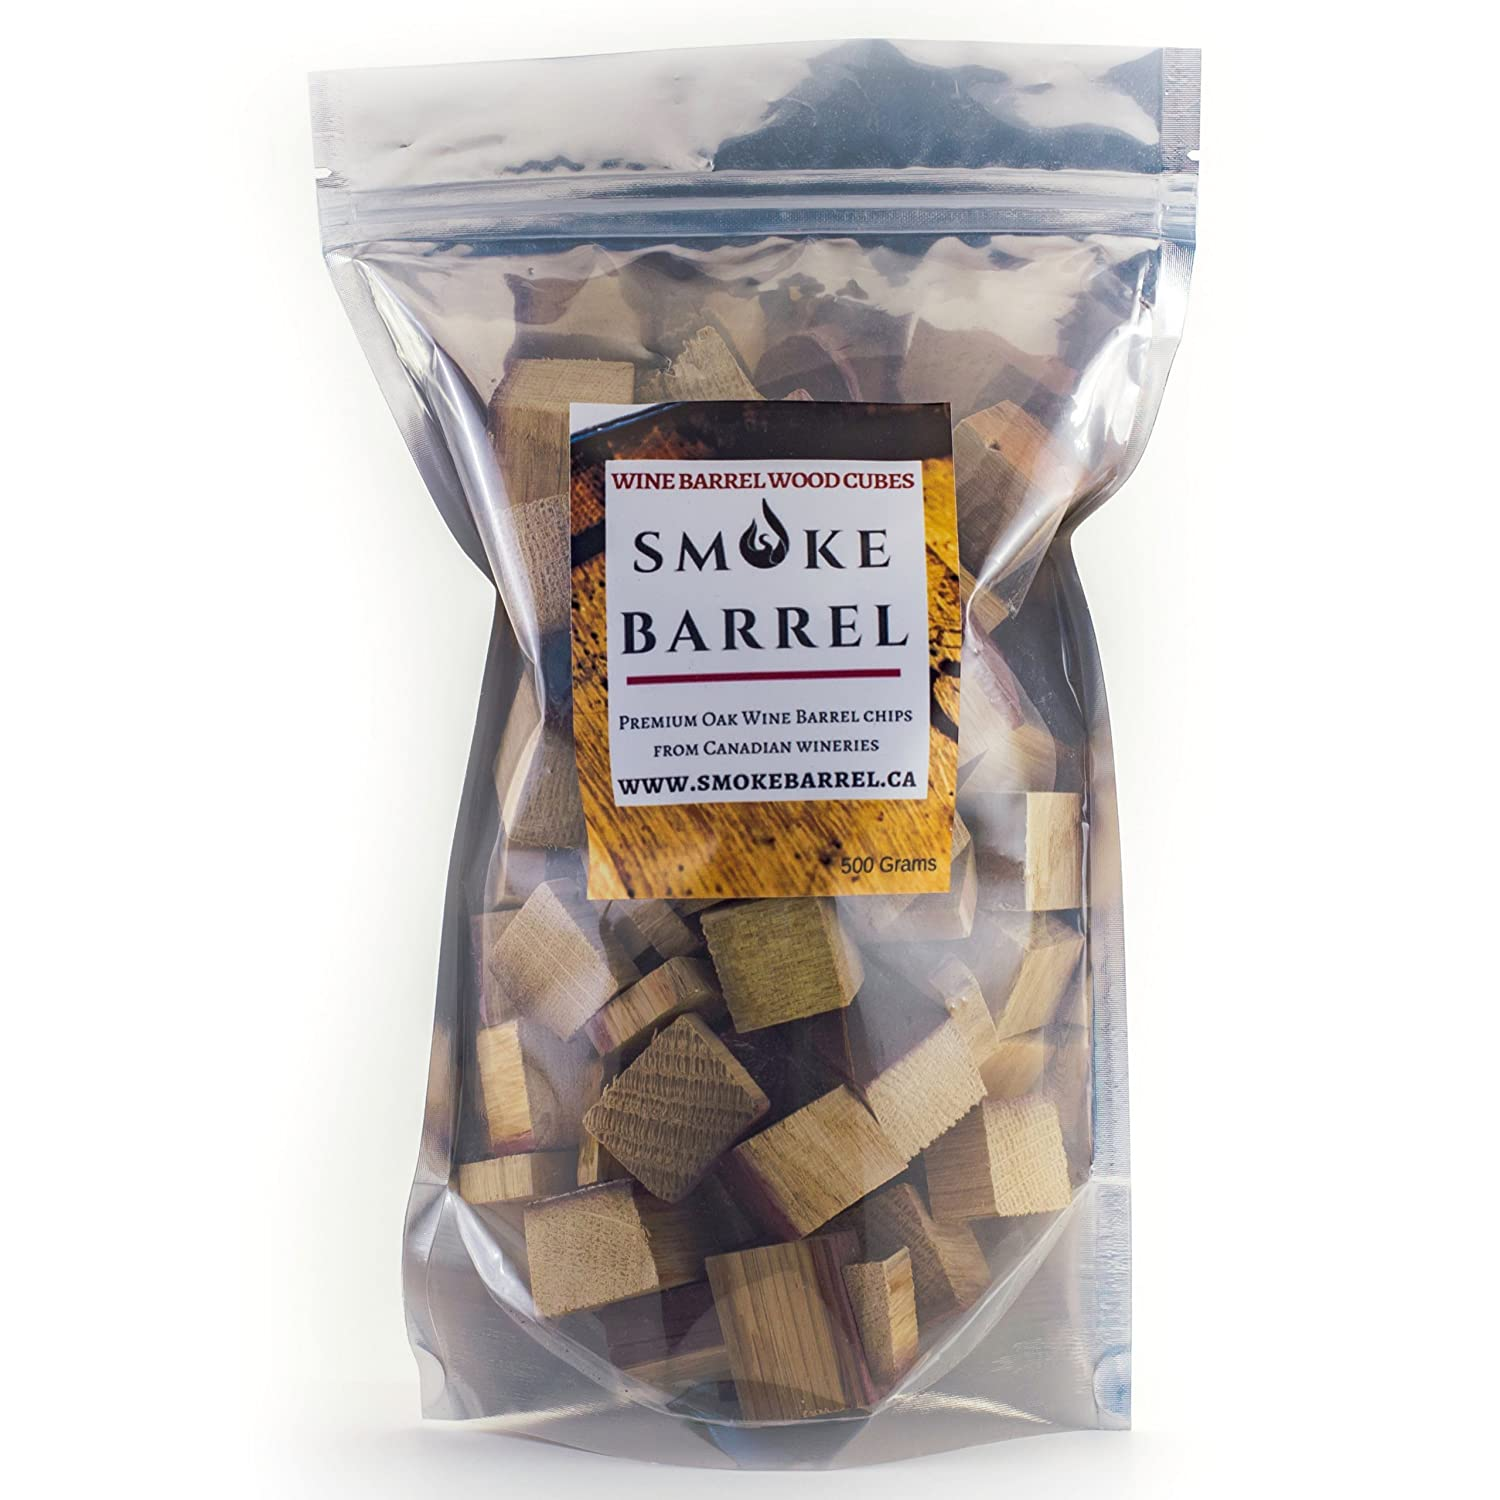 Wine Barrel Wood Chips for A Smoker or BBQ. Made from 100% Wine Barrels- Best Grilling Barbecue Accessories & Utensils Smoke Barrel Inc.